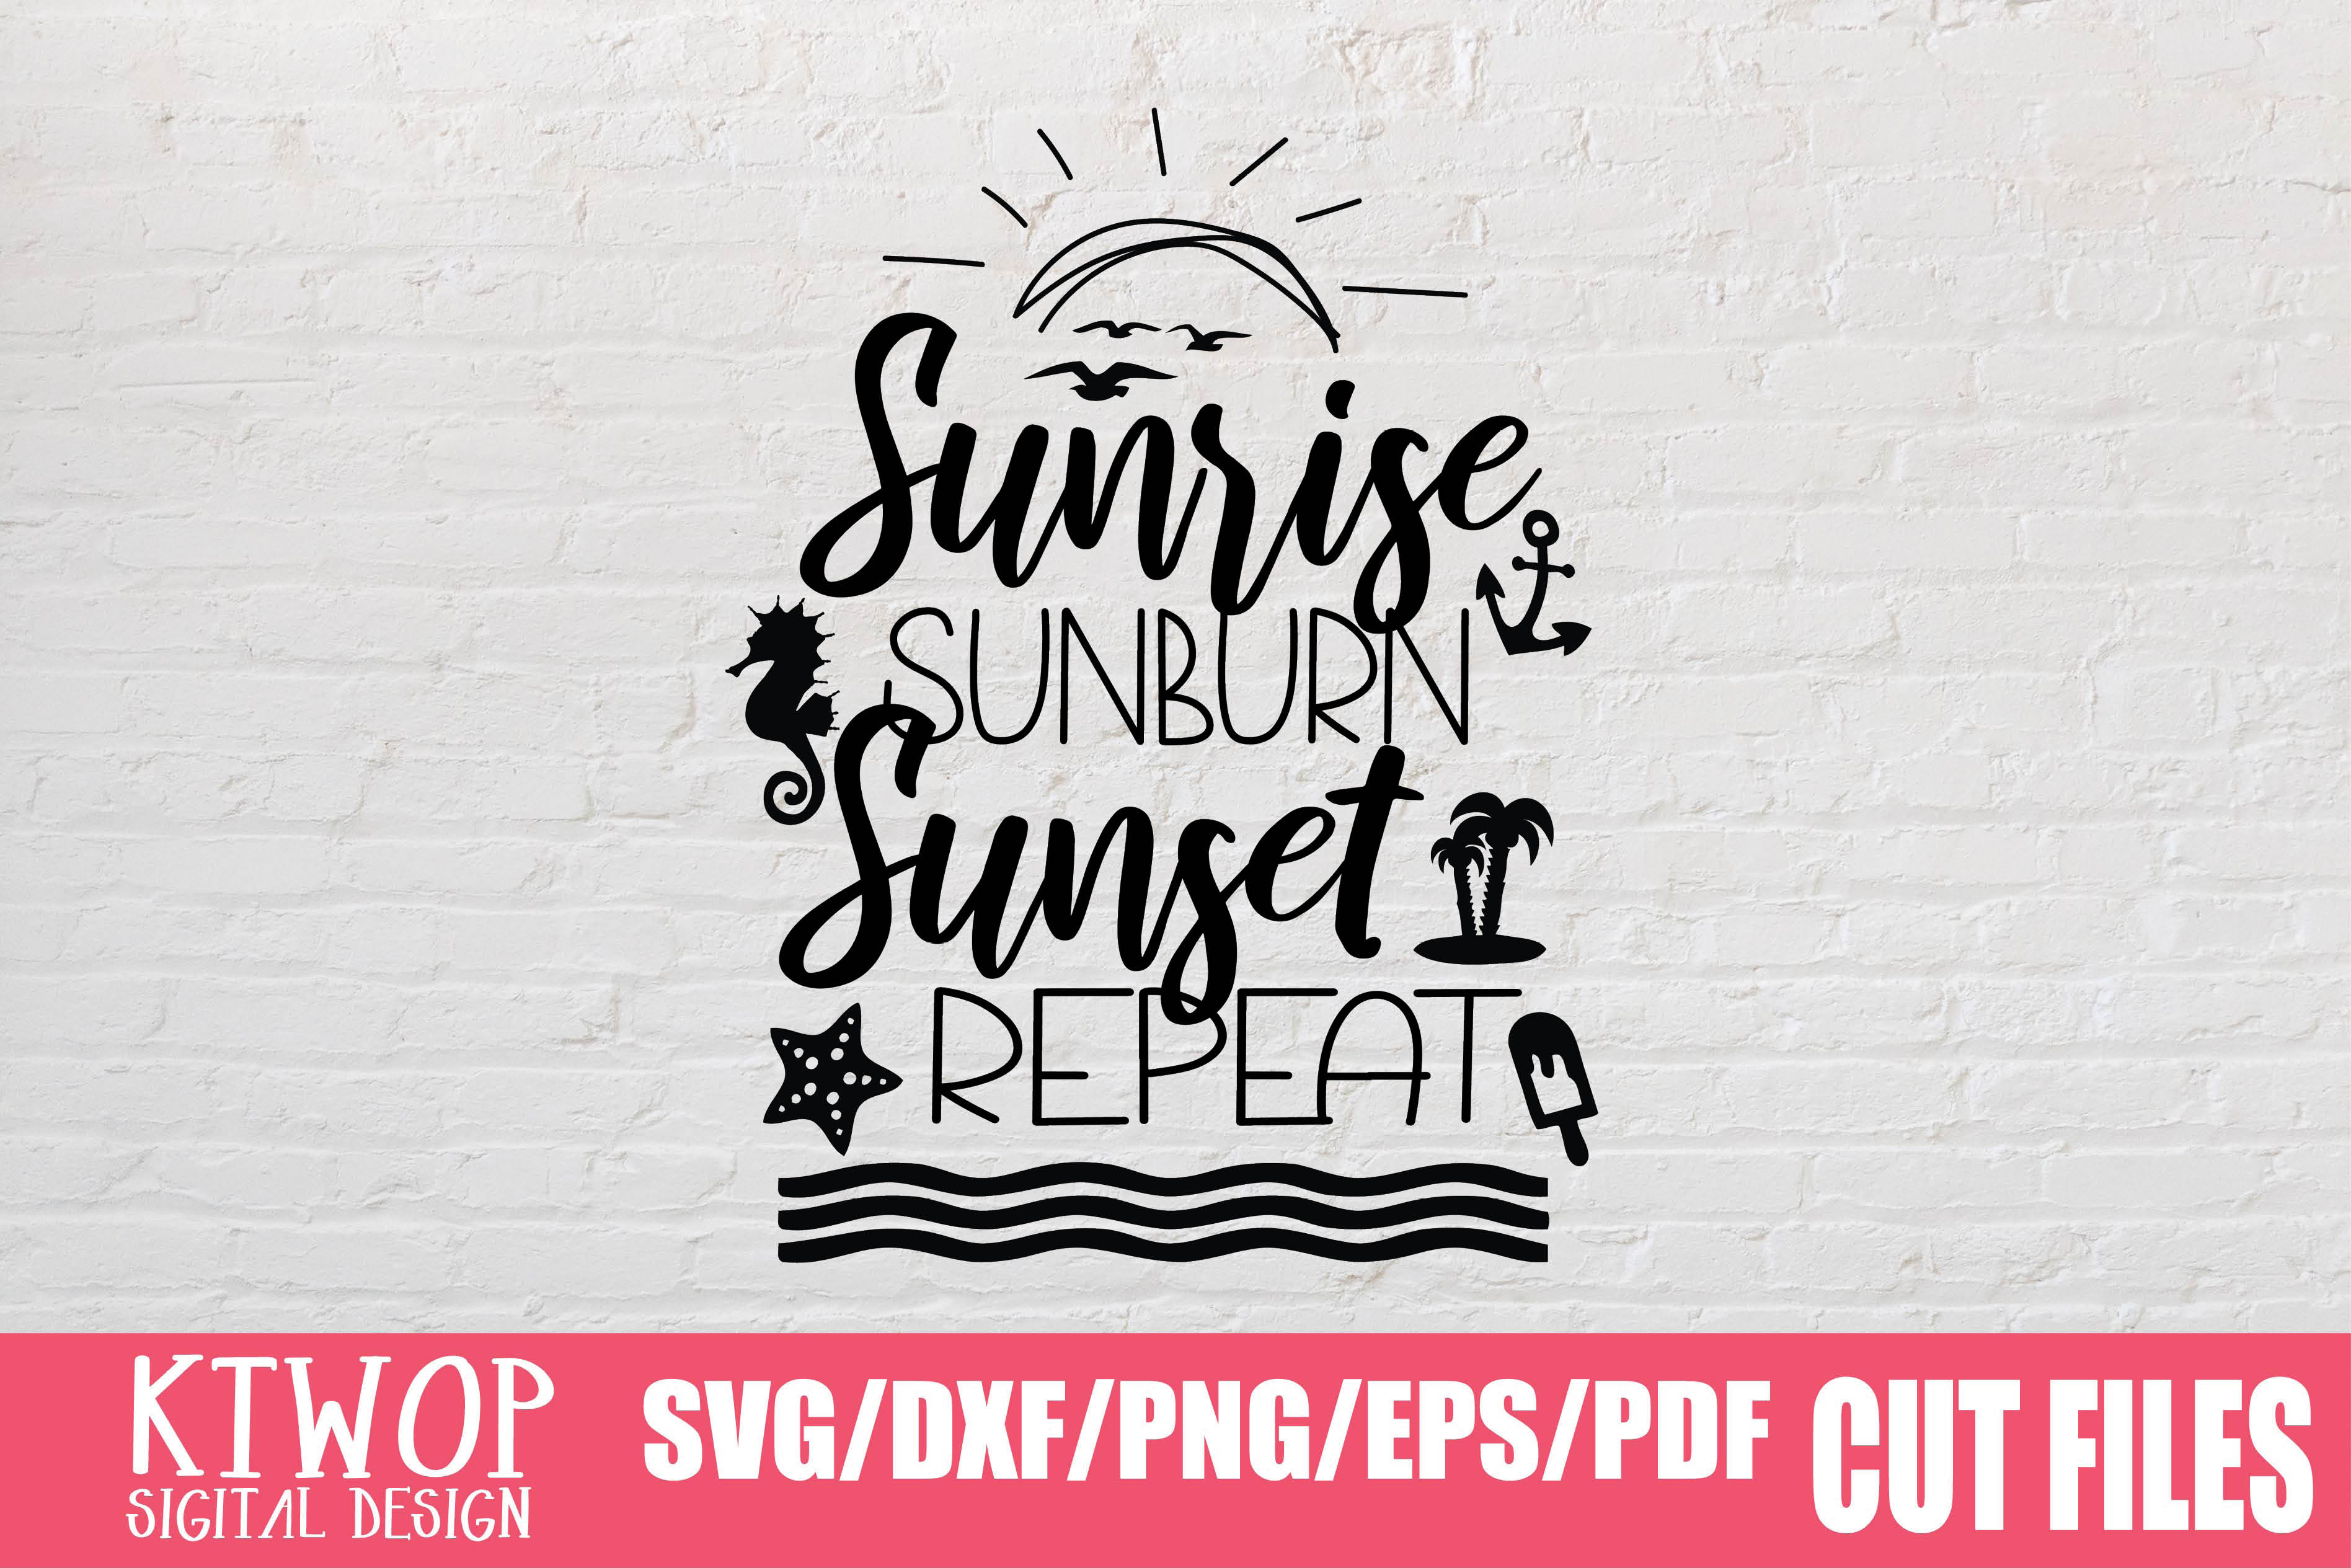 Download Free Sunshine Sunburn Sunset Repeat Graphic By Ktwop Creative Fabrica for Cricut Explore, Silhouette and other cutting machines.